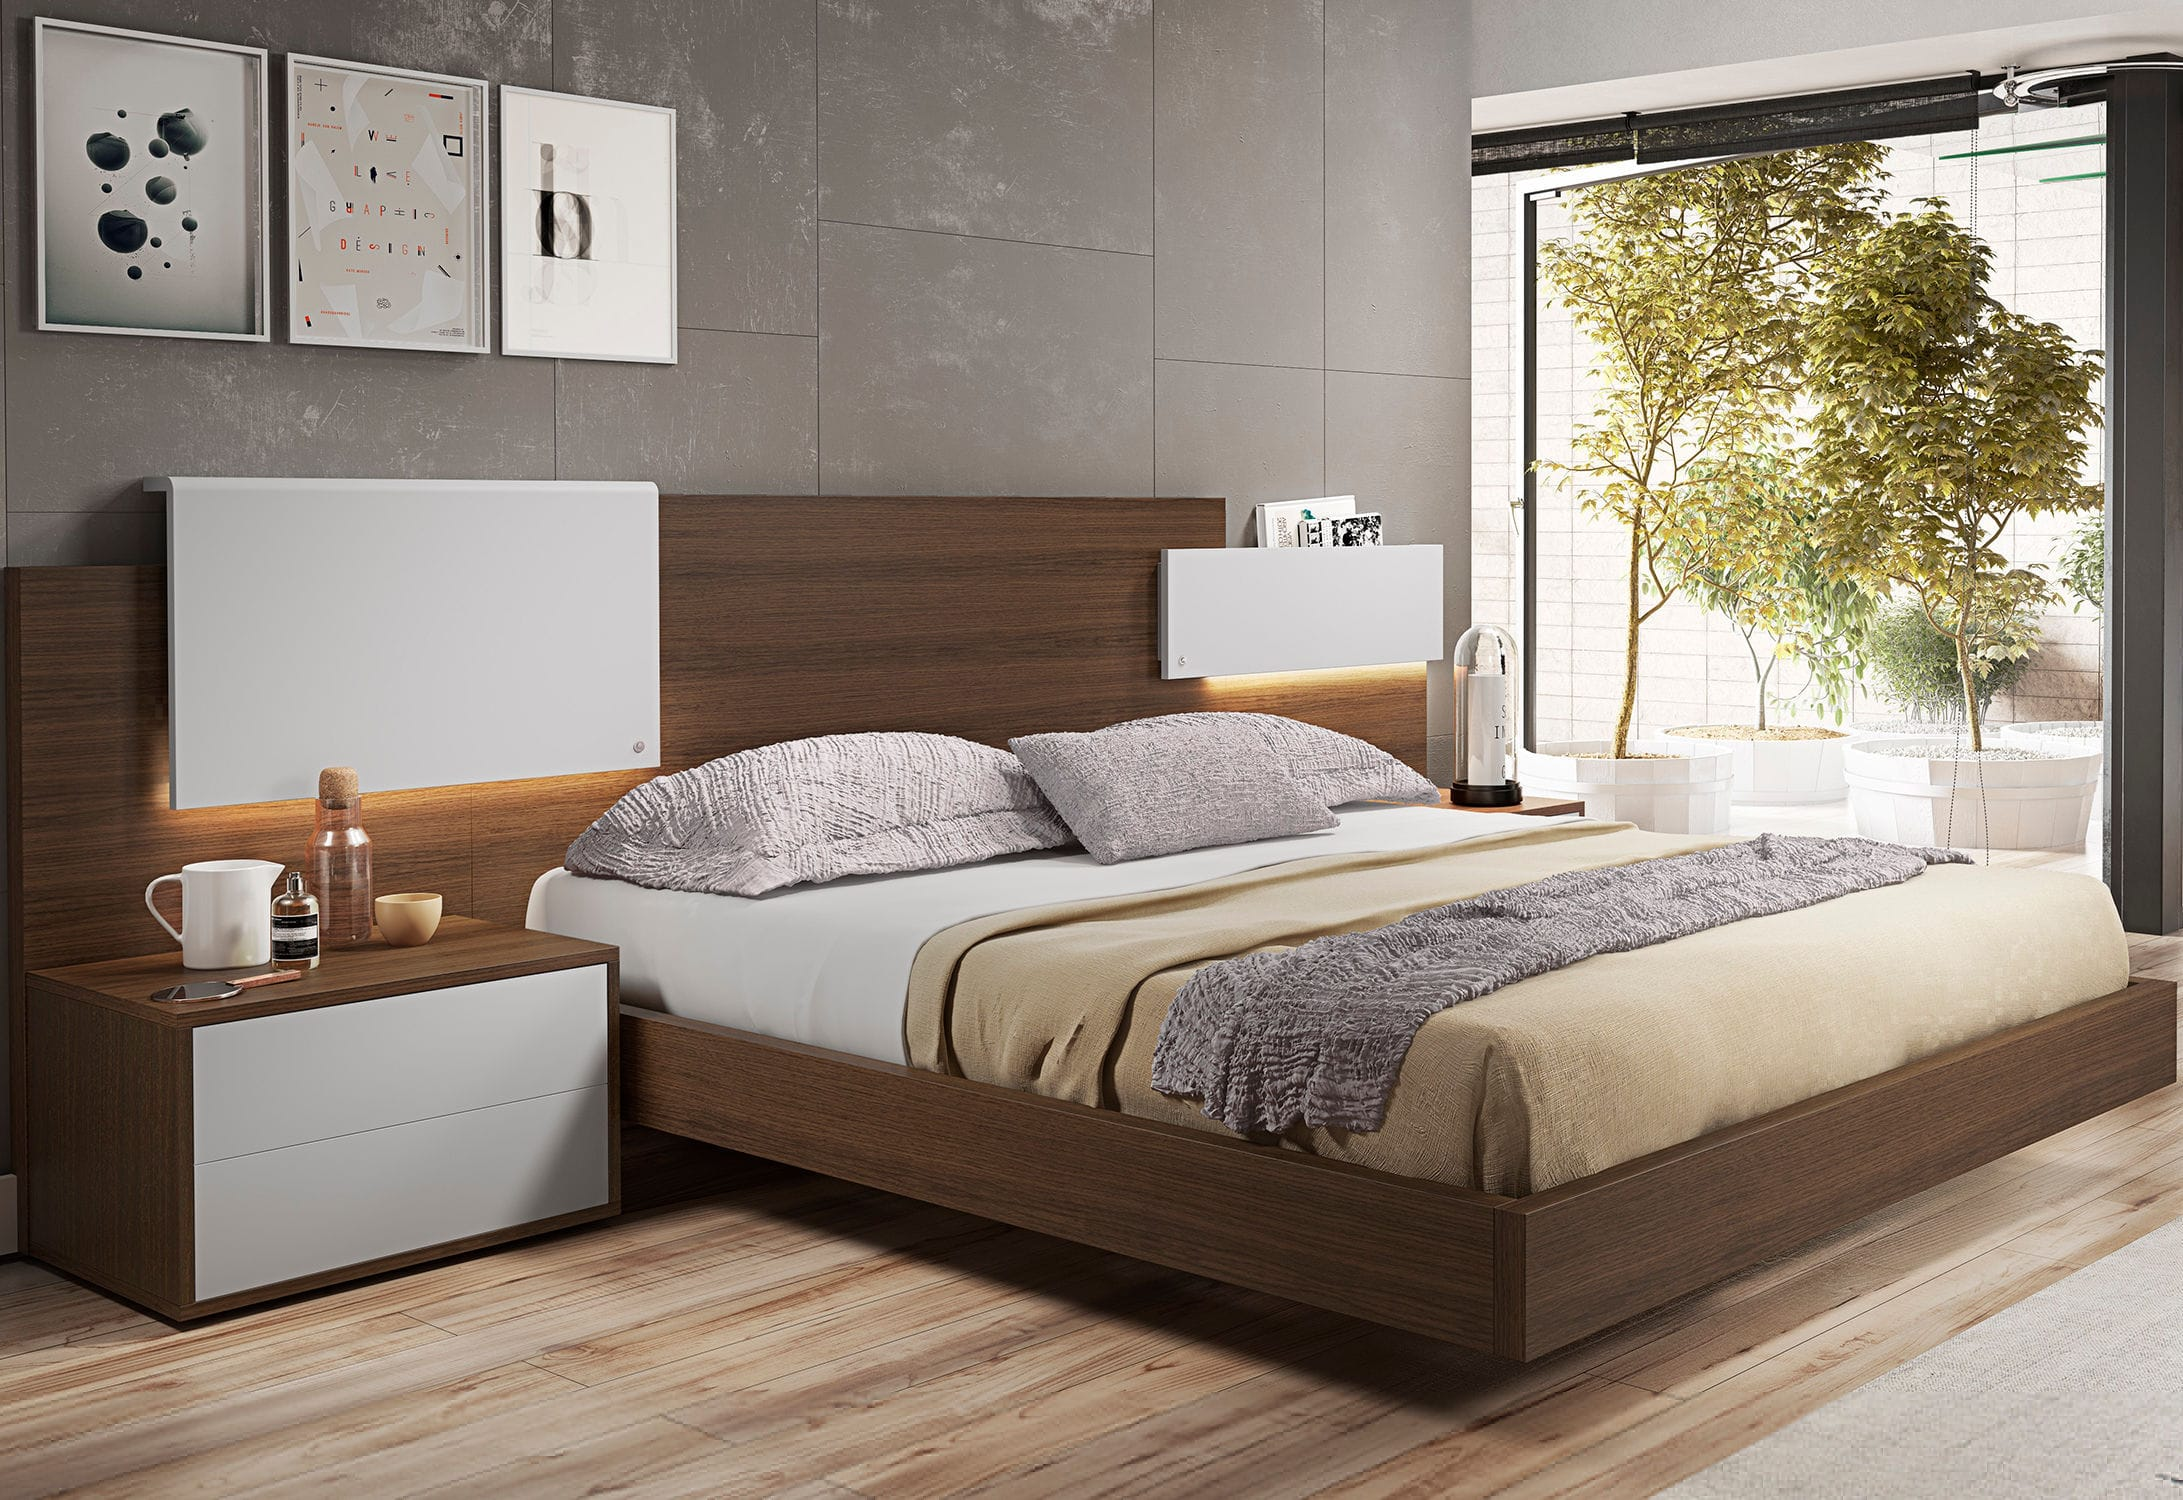 Double Bed Contemporary With Headboard With Lights Nexo8  # Muebles Piferrer Iline